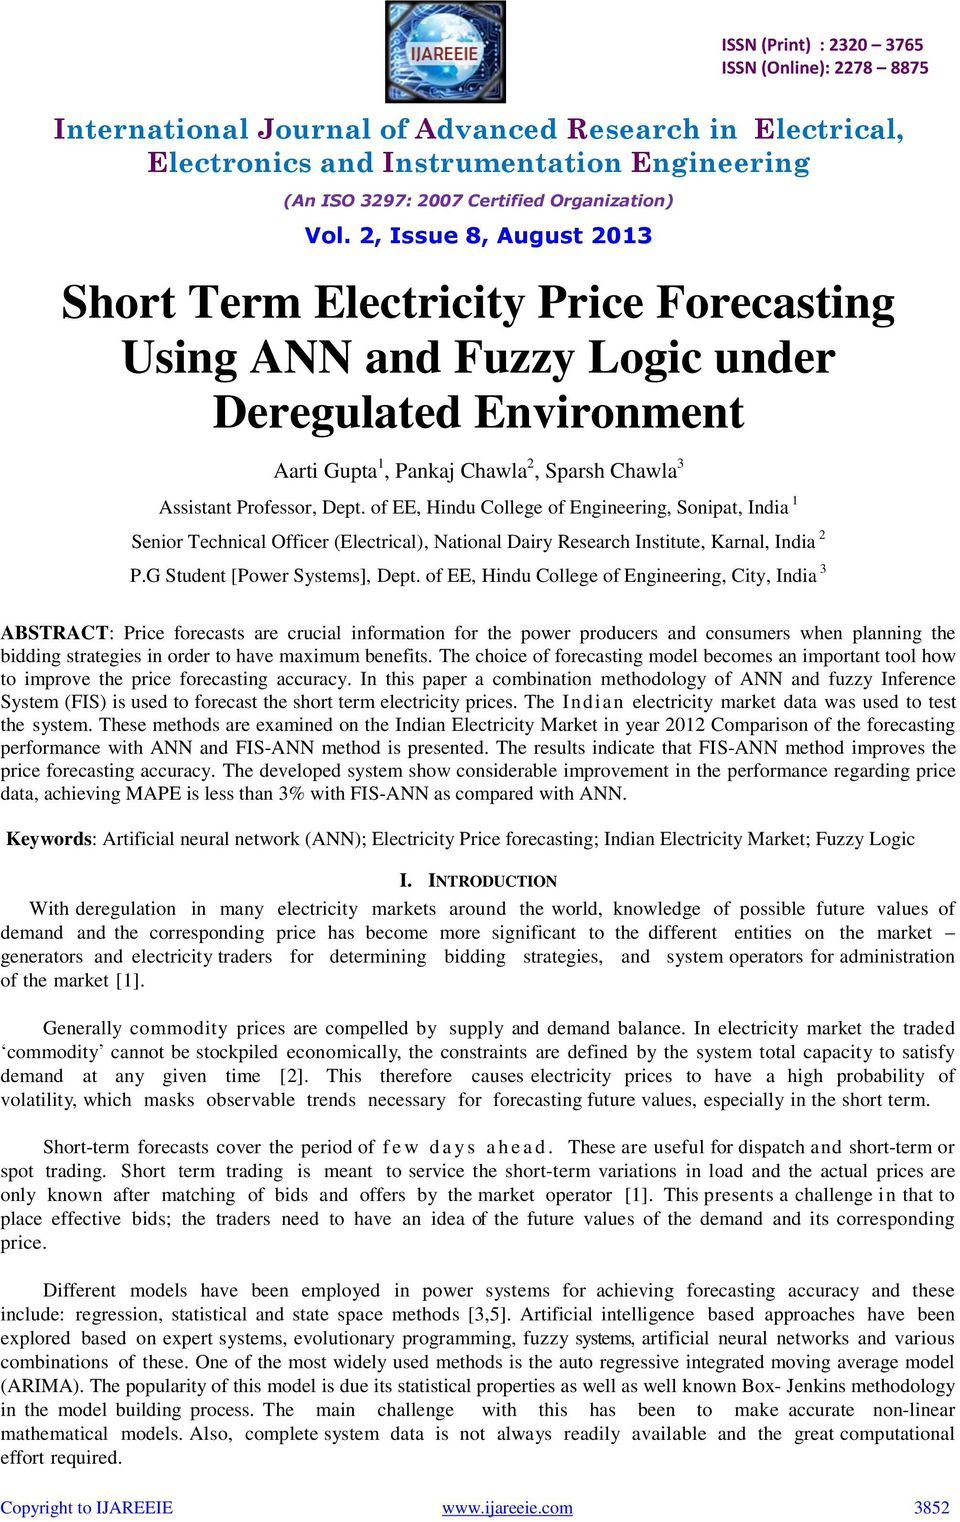 of EE, Hindu College of Engineering, City, India 3 ABSTRACT: Price forecasts are crucial information for the power producers and consumers when planning the bidding strategies in order to have